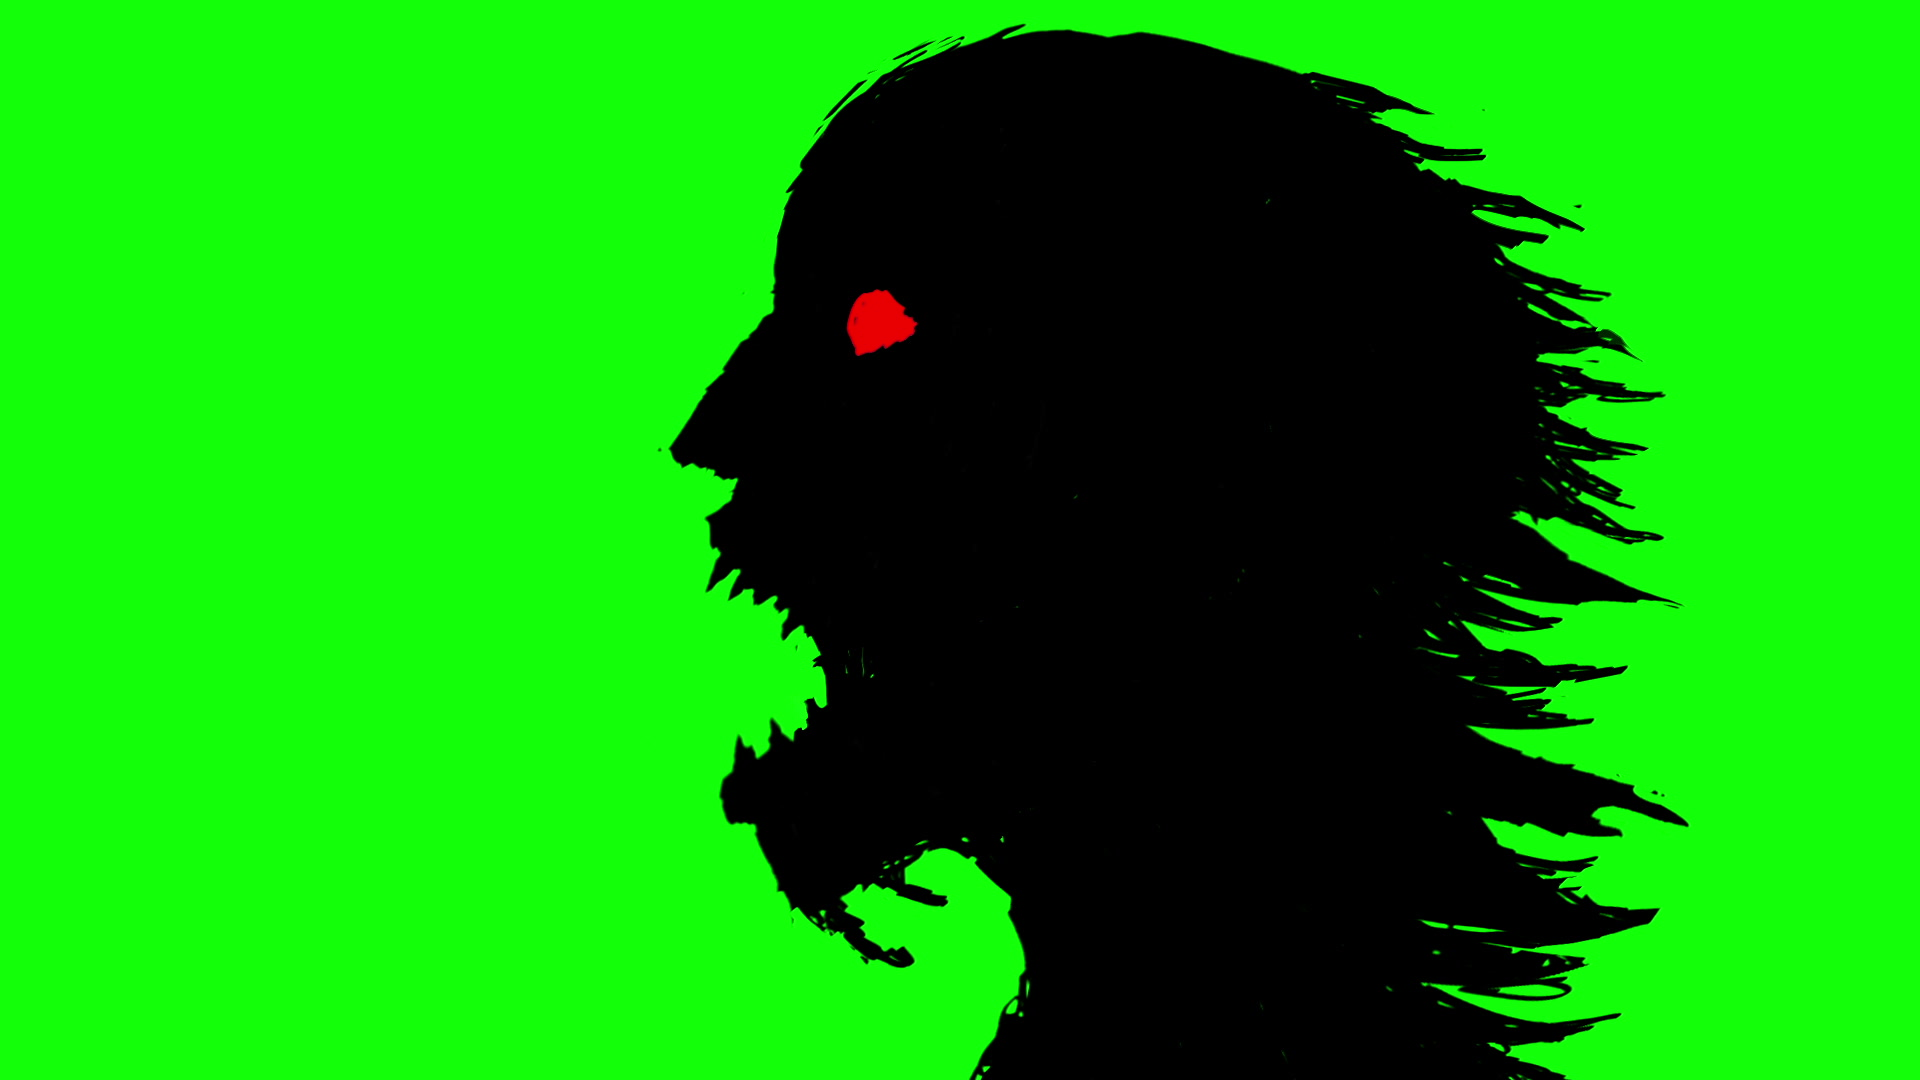 1920x1080 Video Silhouette Of A Head Of A Running Zombie Woman Clapping